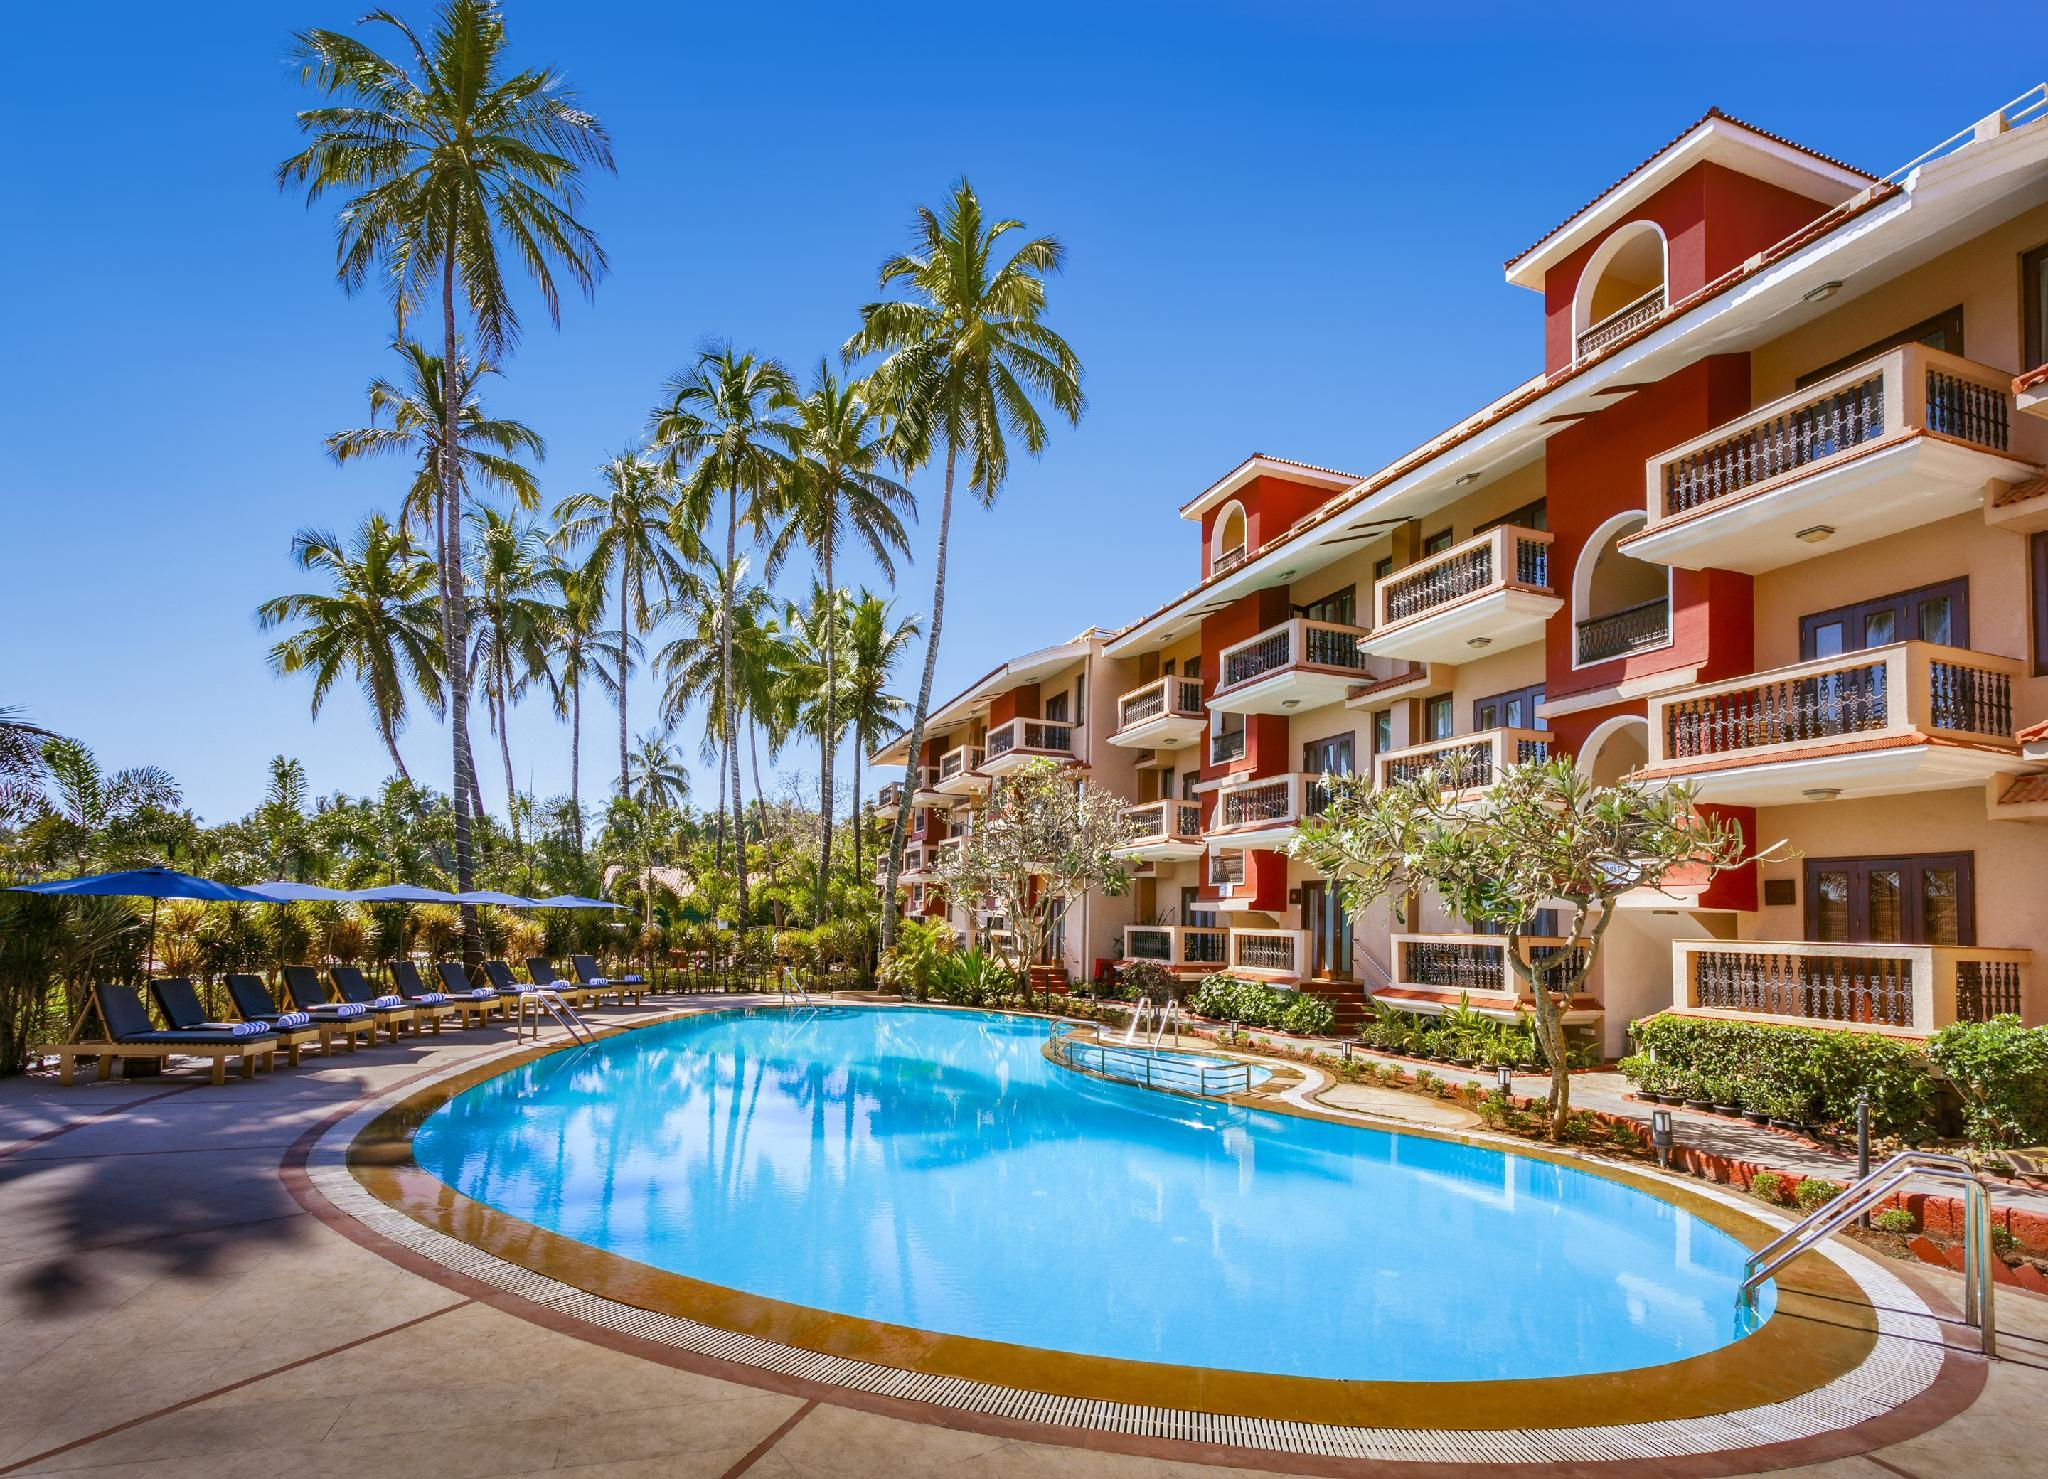 Lazylagoon Sarovar Portico Suites Goa India Photos